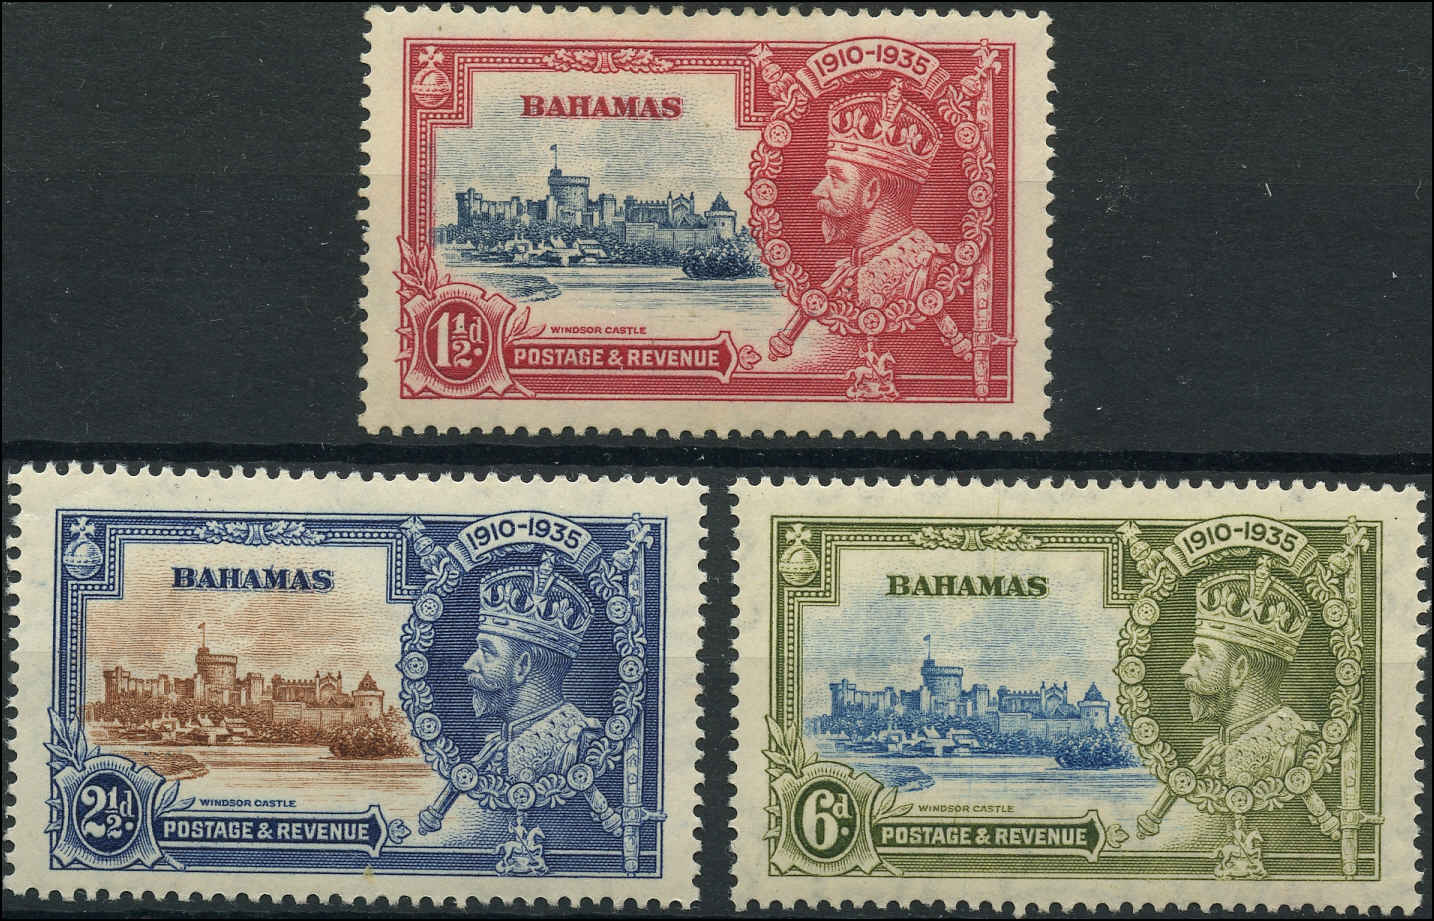 Bahamas Stamp, Scott ##92-94, F-VF, MH